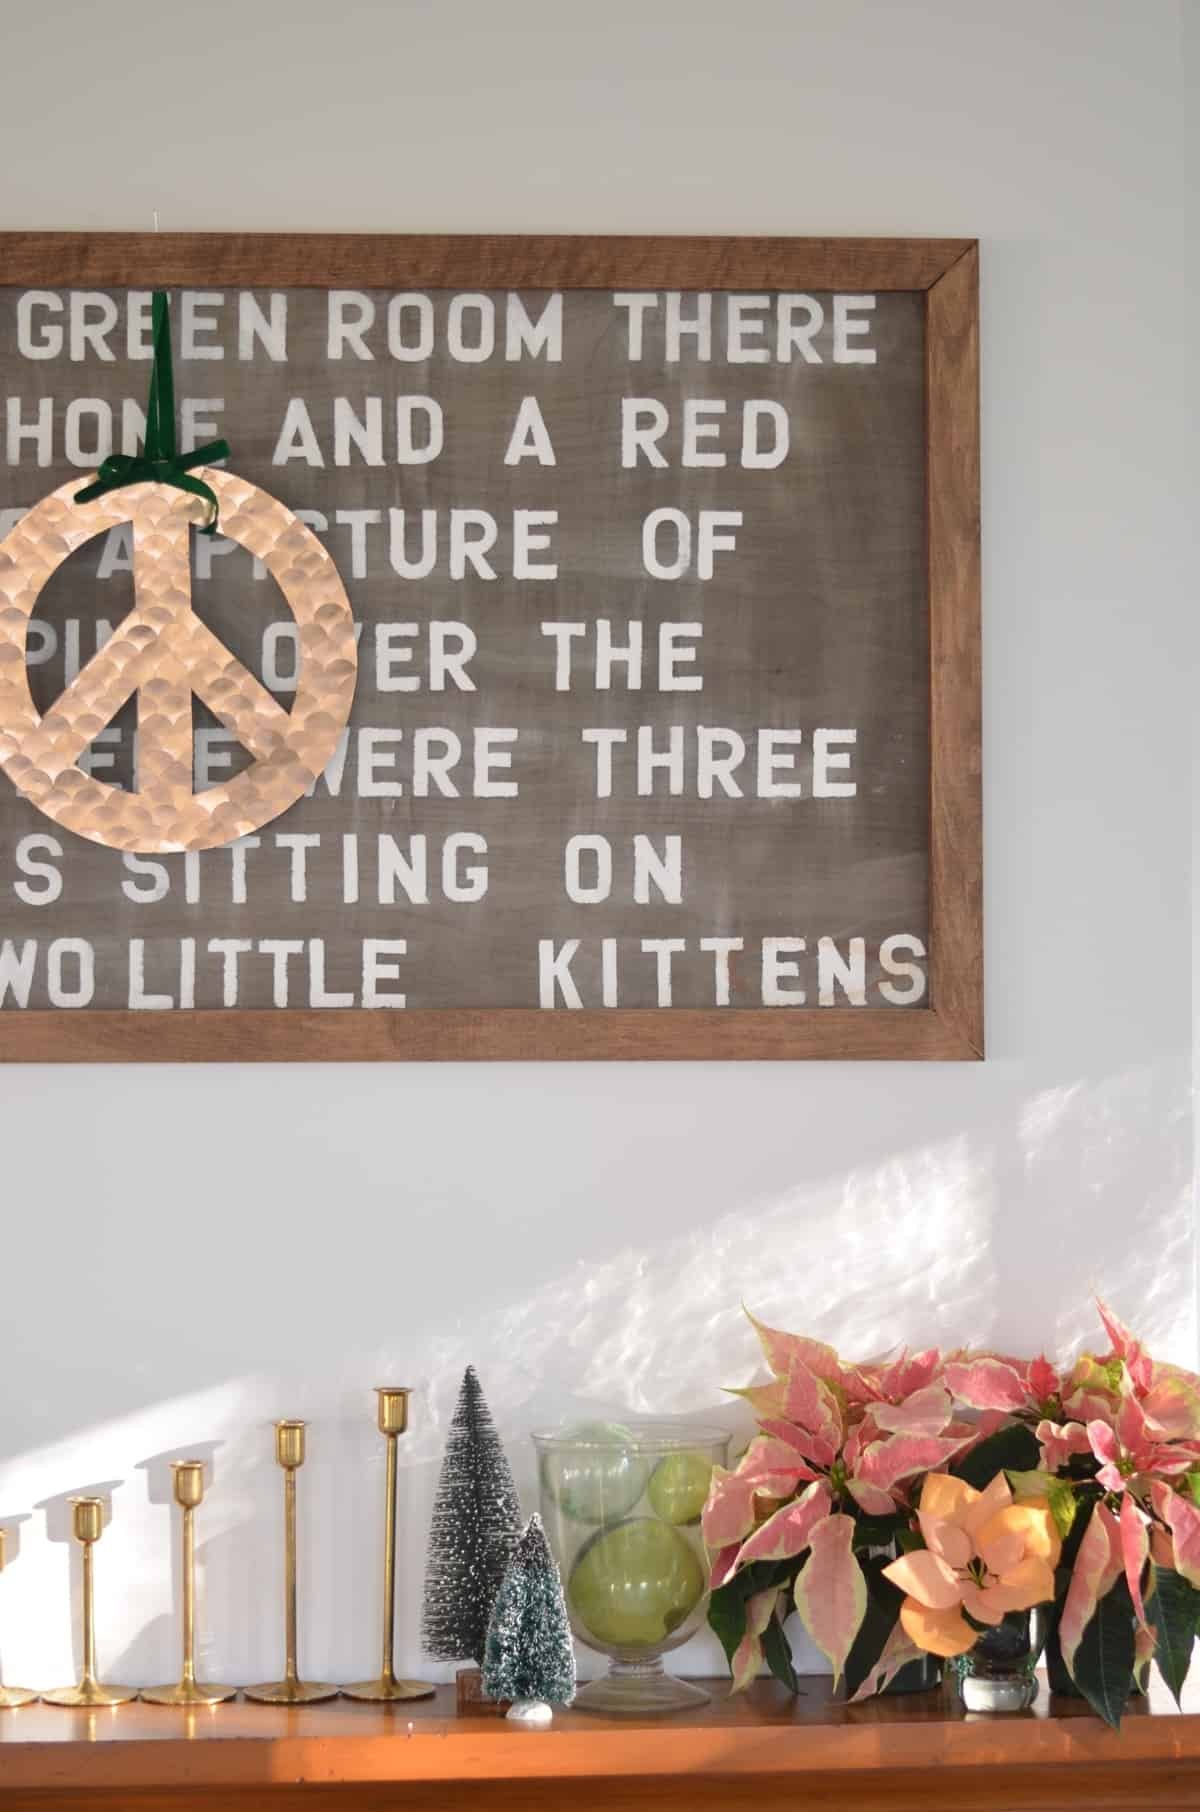 DIY bloggers transform basic craft store peace signs into Peace Love and DIY creativity.